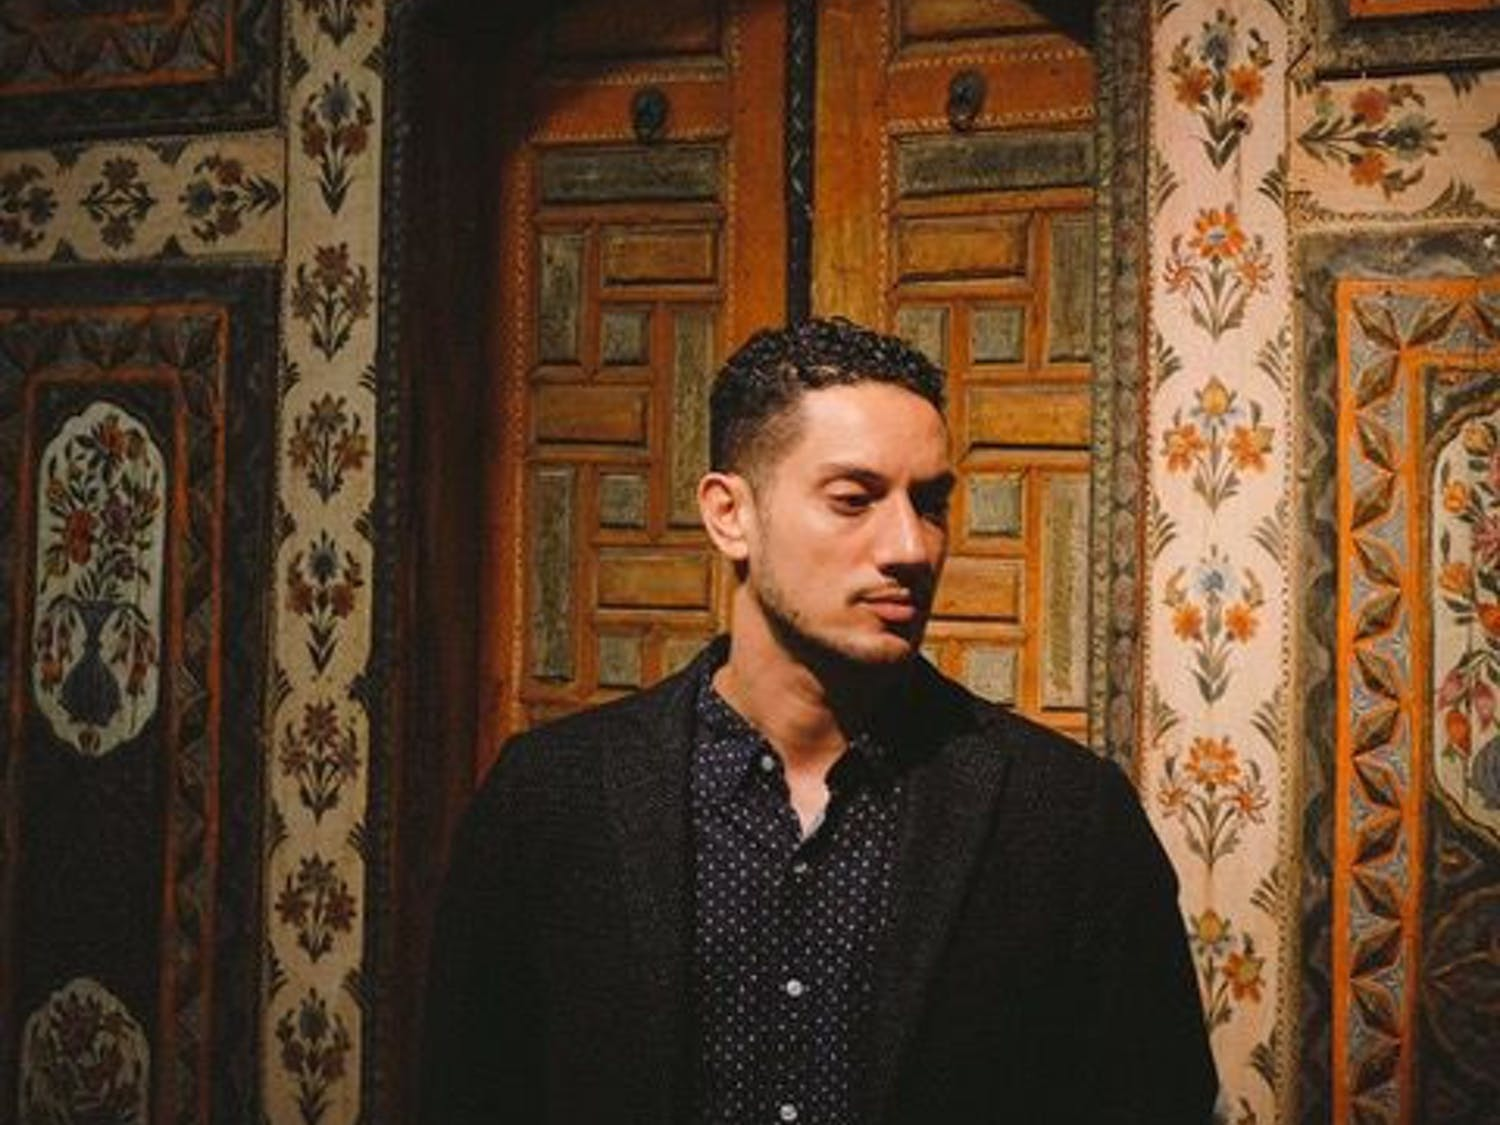 Omar Offendum is a Syrian-American rapper and poet who uses his art to bring awareness to the issues he cares about most.